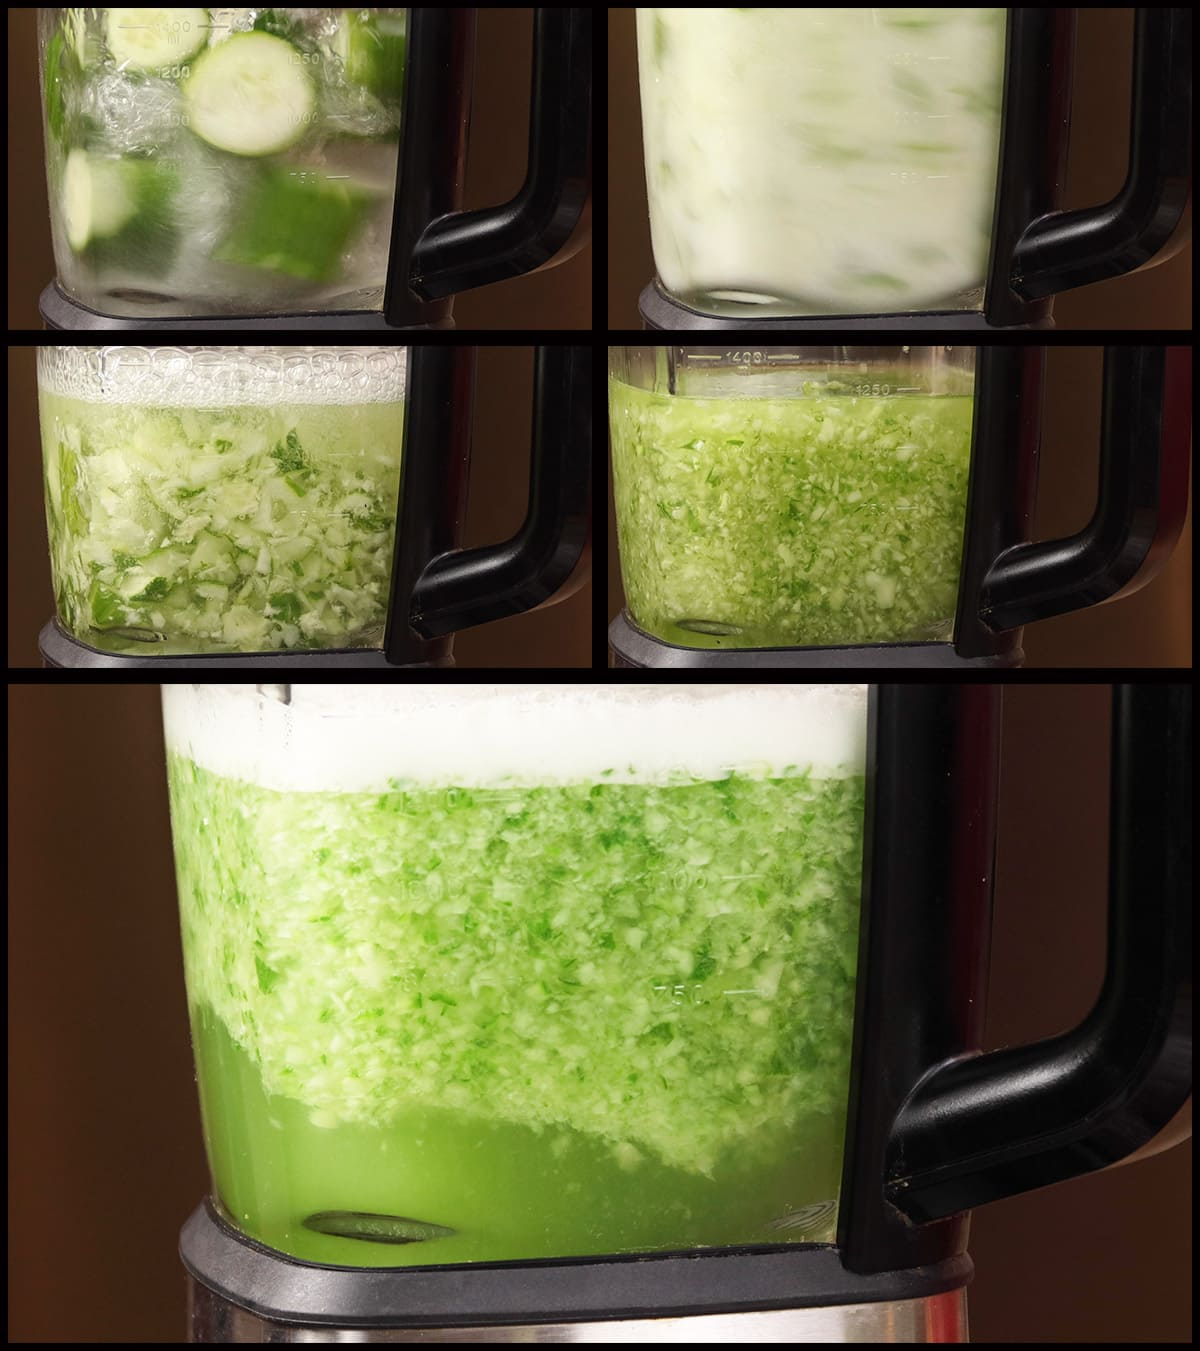 Blender with the chopped up cucumber and infused vodka